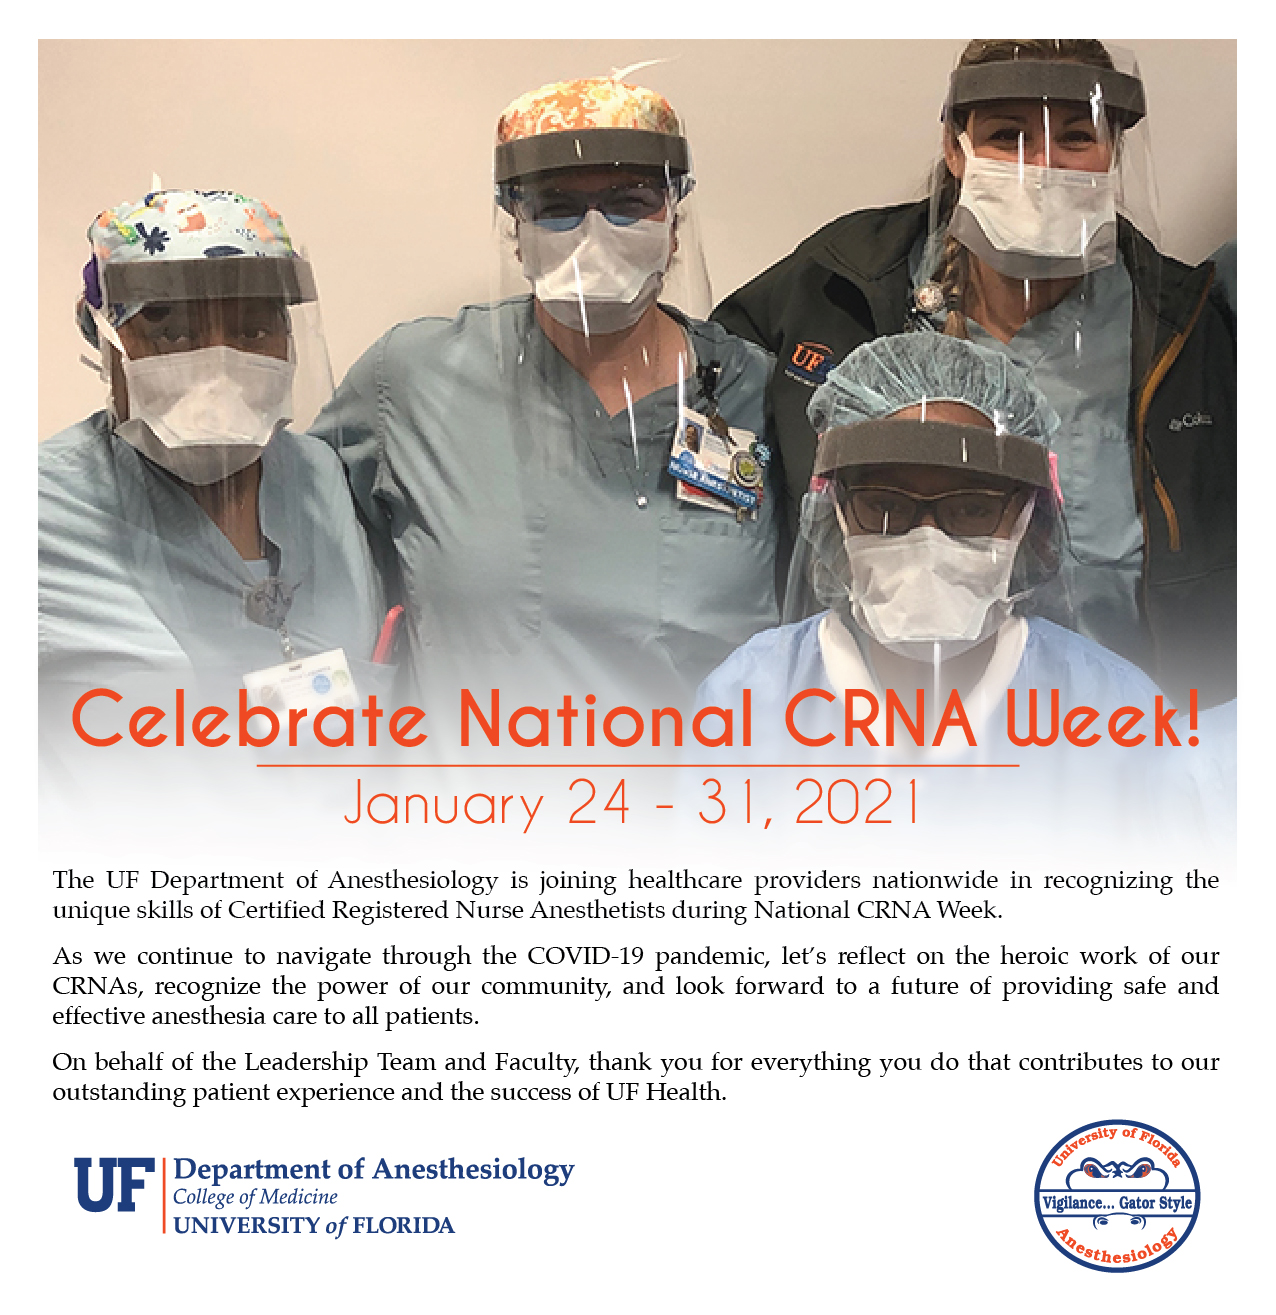 Celebrate C-R-N-A week text and photo of some C-R-N-A-s in personal protective equipment